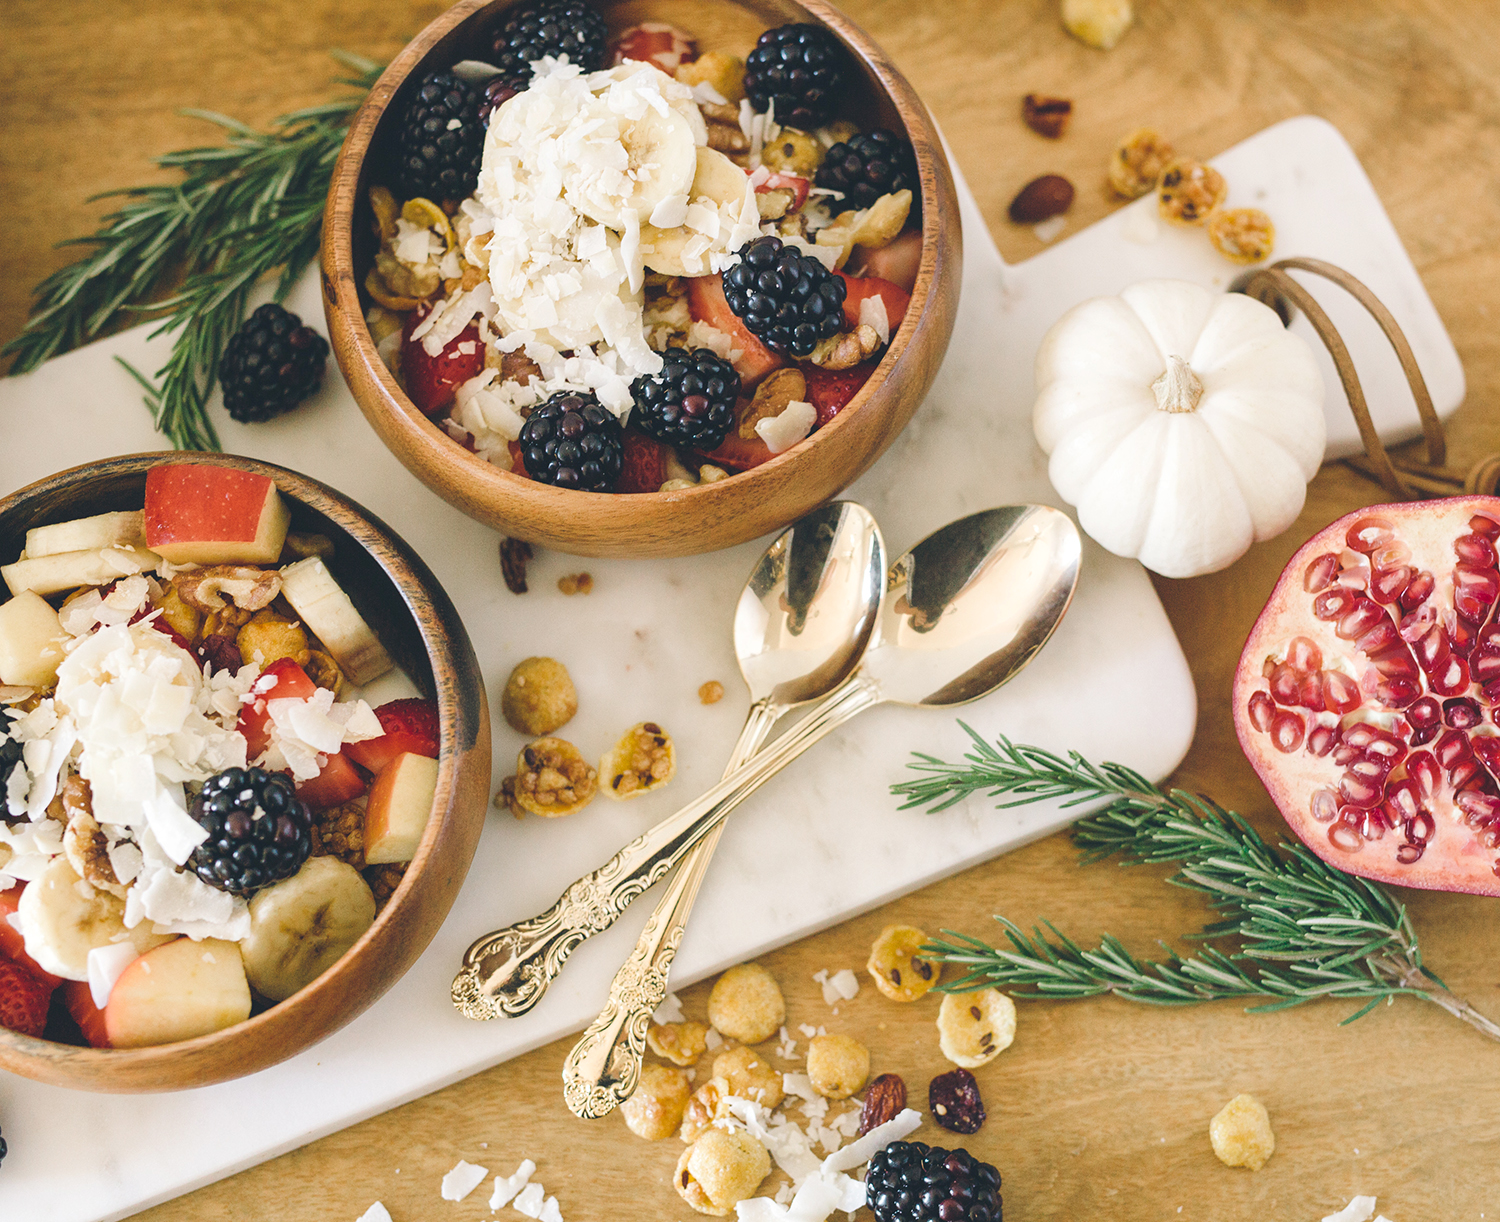 Healthy breakfast bowl bar for hosting overnight guests | A Fabulous Fete